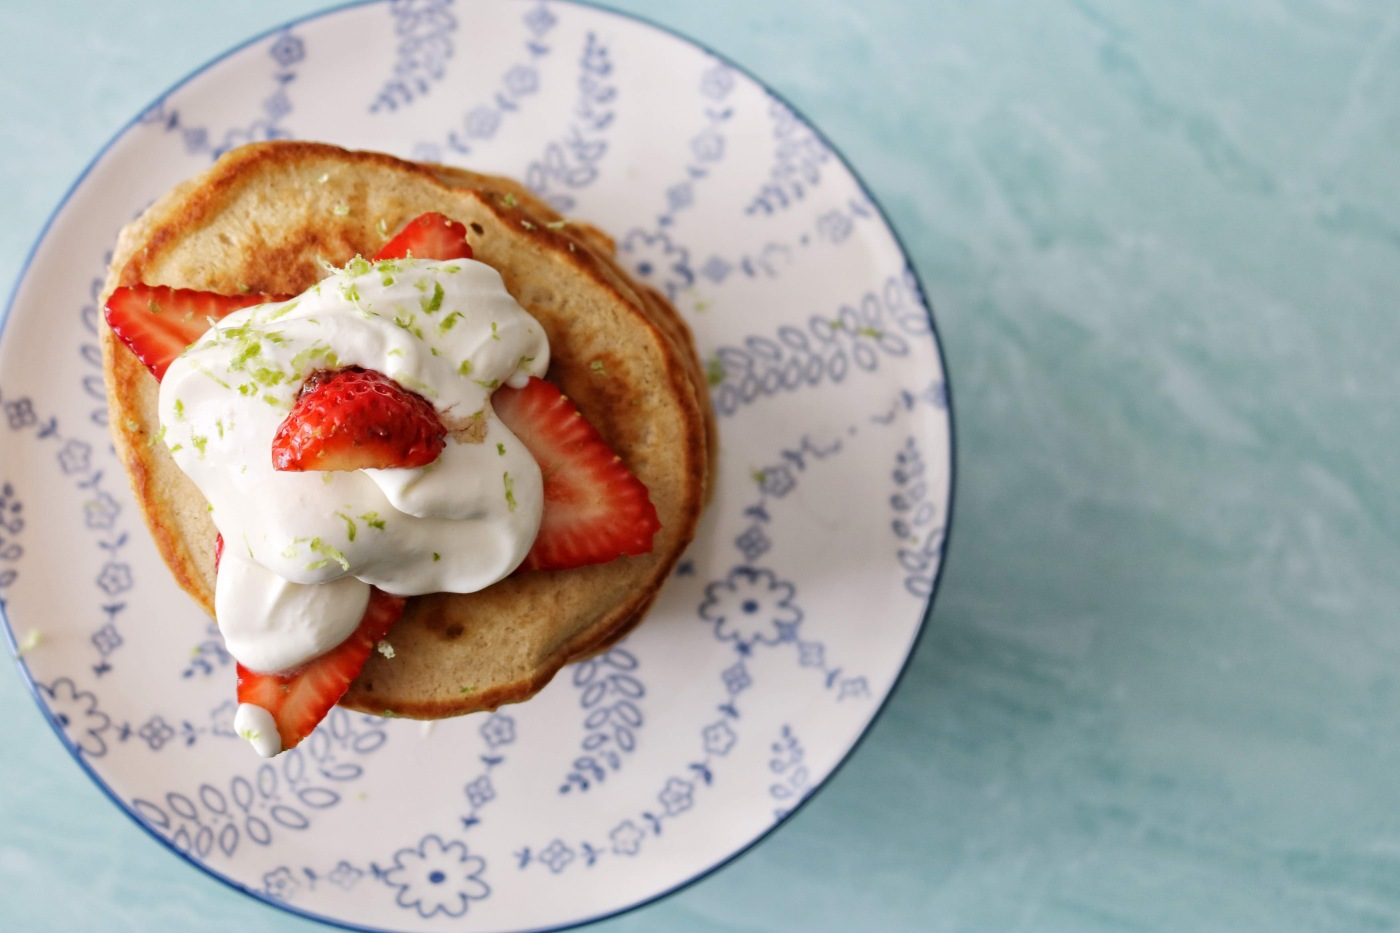 Cardamom pancakes with balsamic strawberries & limey labne whipped cream.